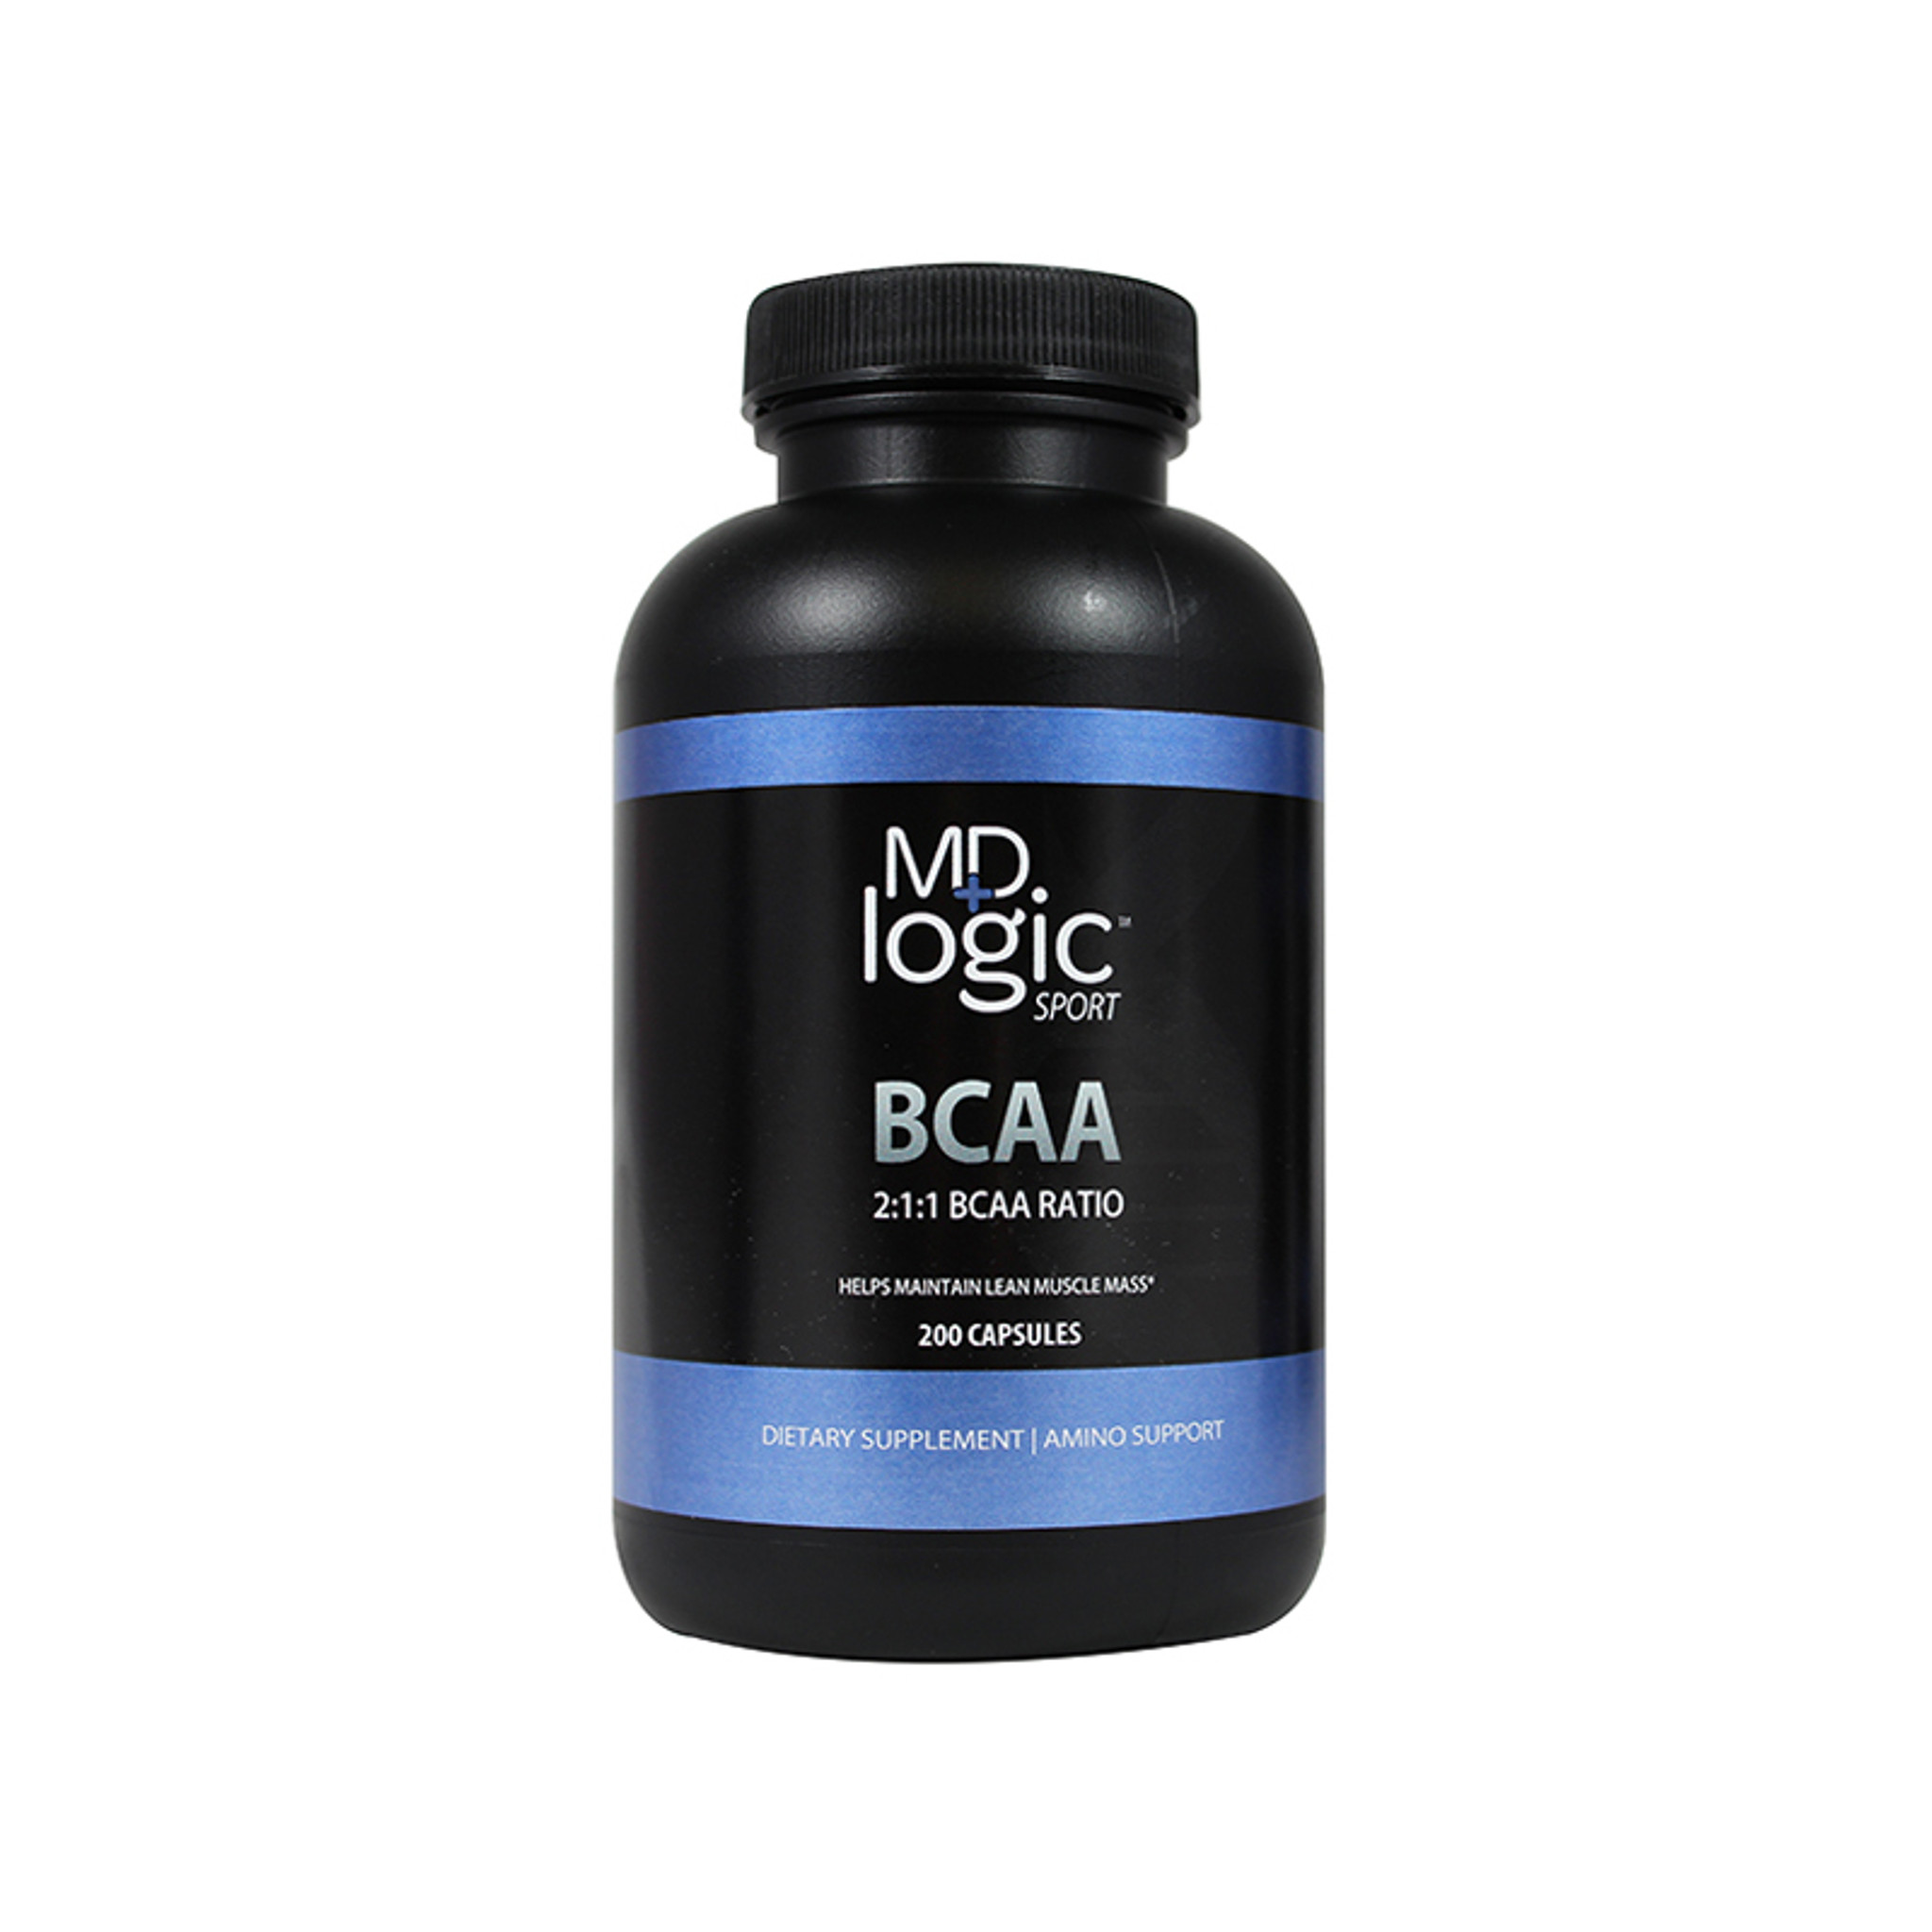 BCAA  - Buy One Get One FREE